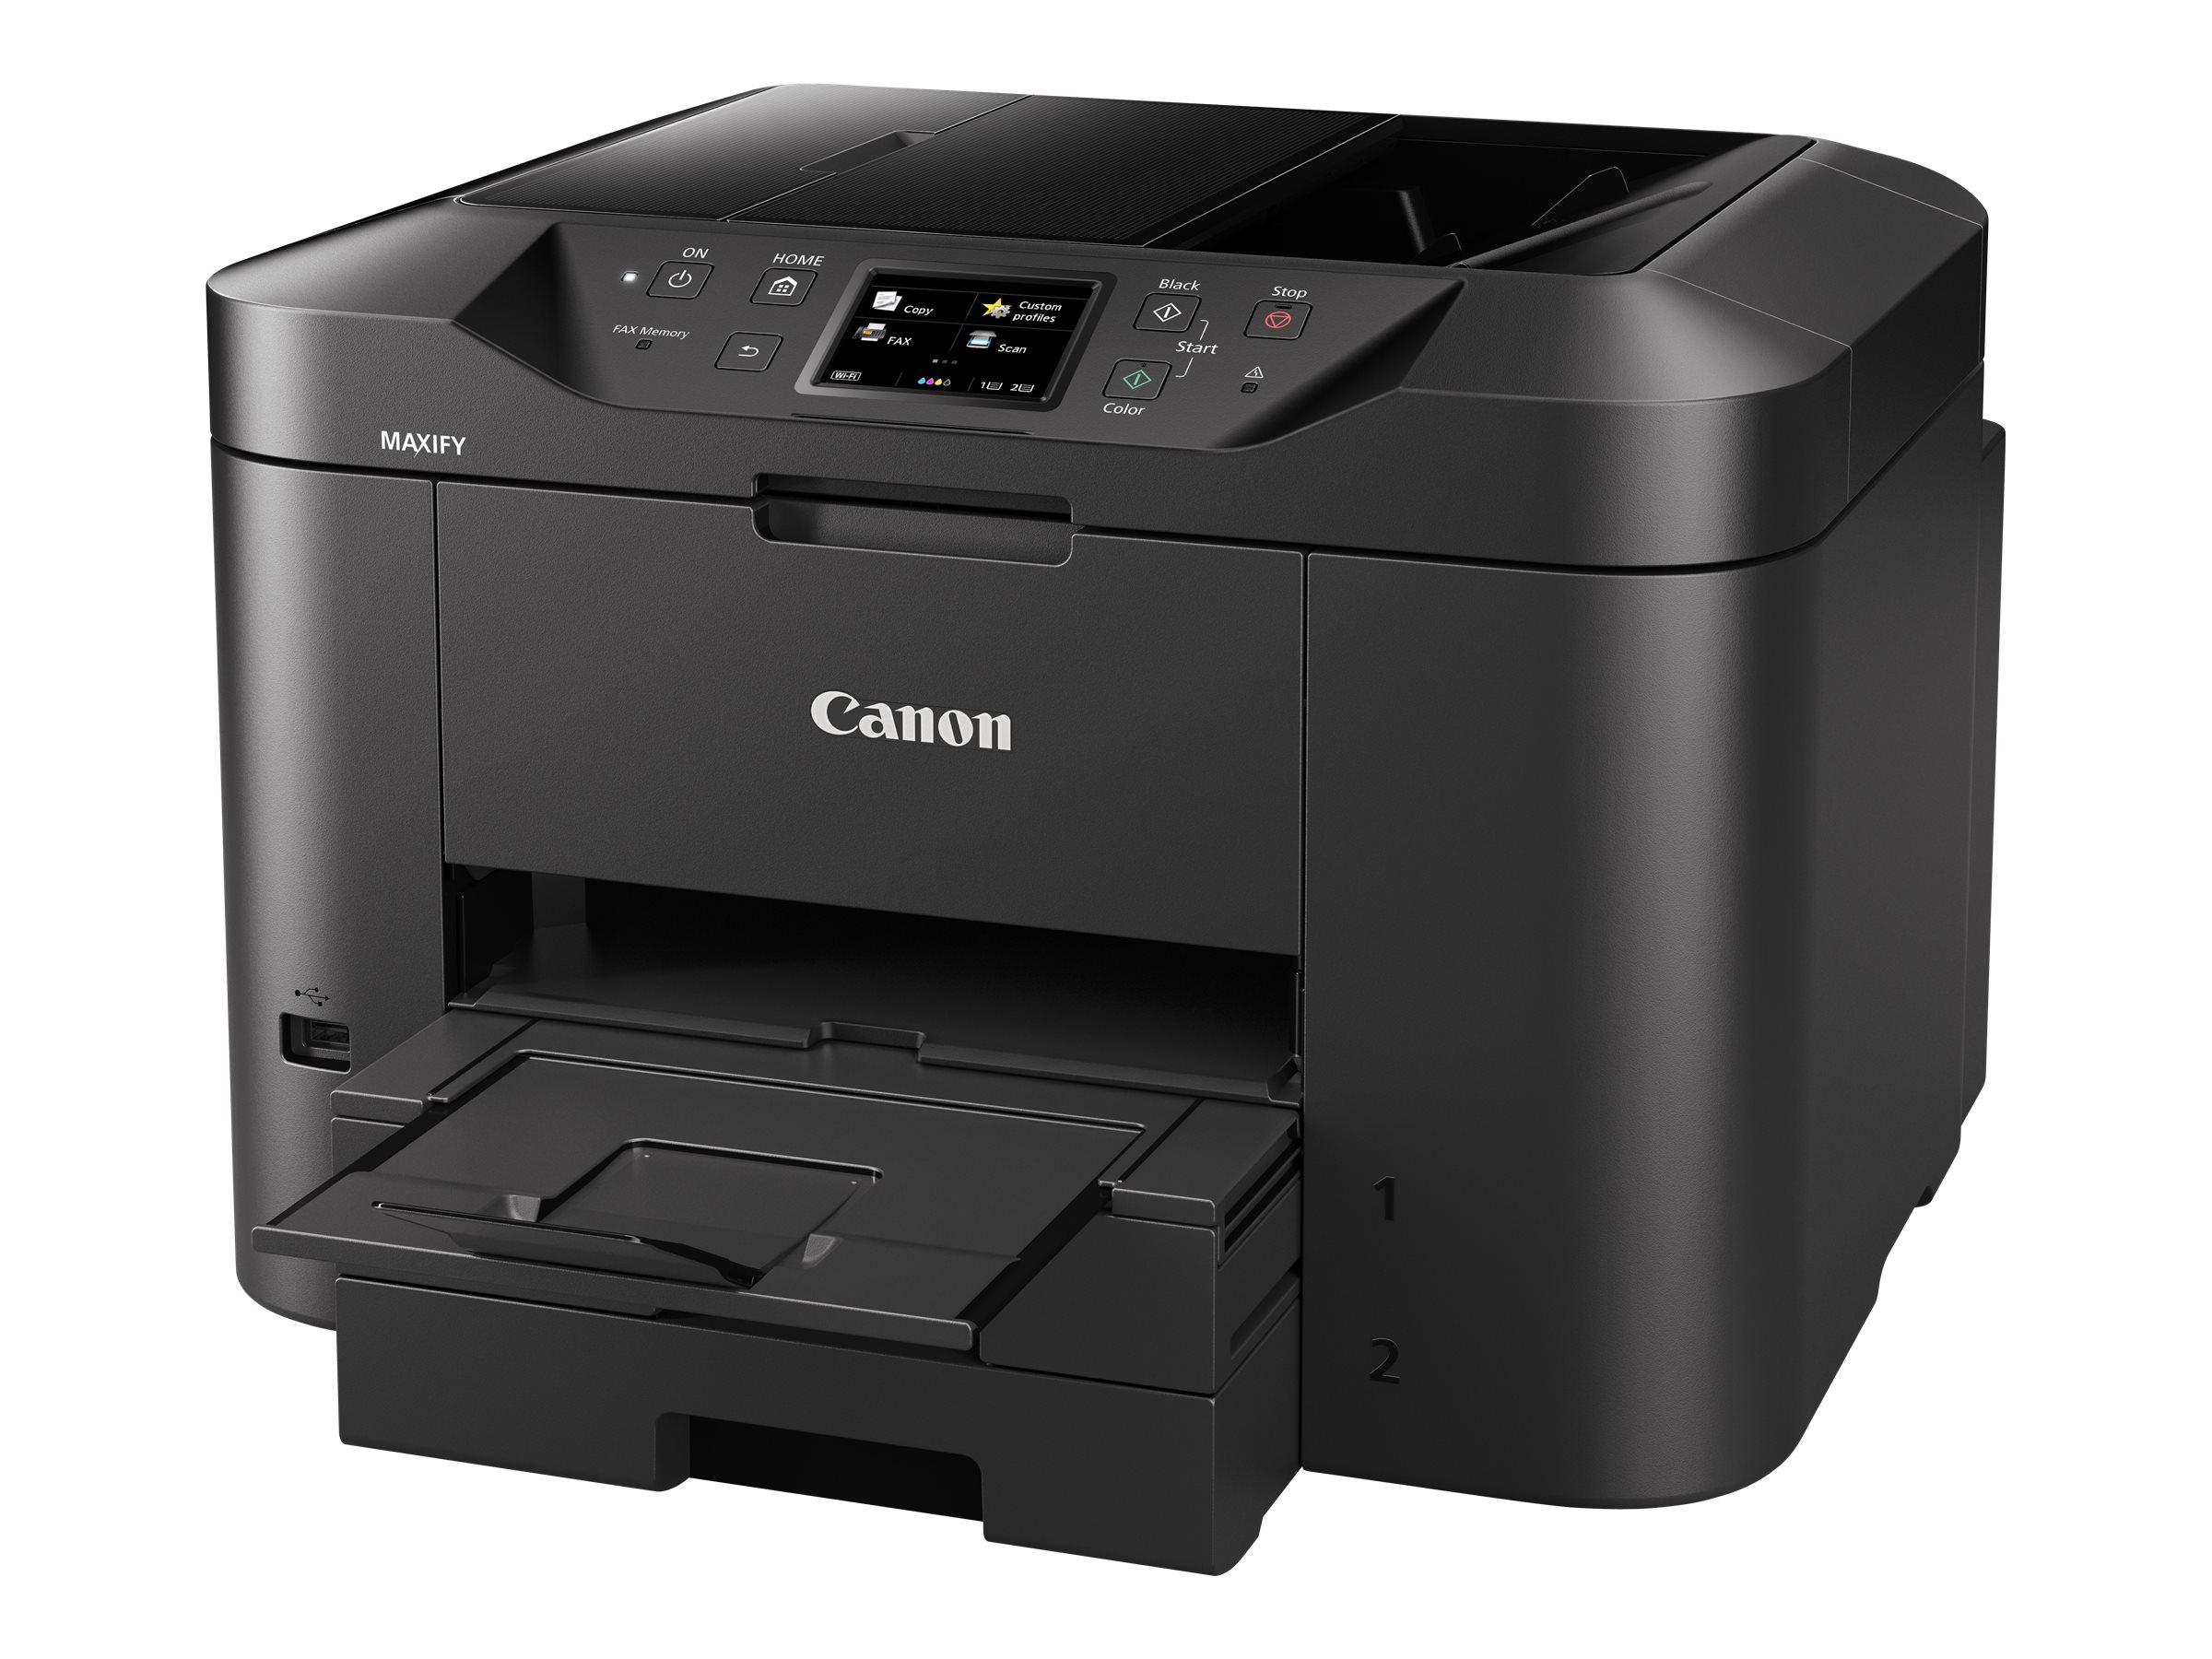 Canon MAXIFY MB2755 - Multifunktionsdrucker - Farbe - Tintenstrahl - A4 (210 x 297 mm), Legal (216 x 356 mm) (Original) - A4/Legal (Medien)